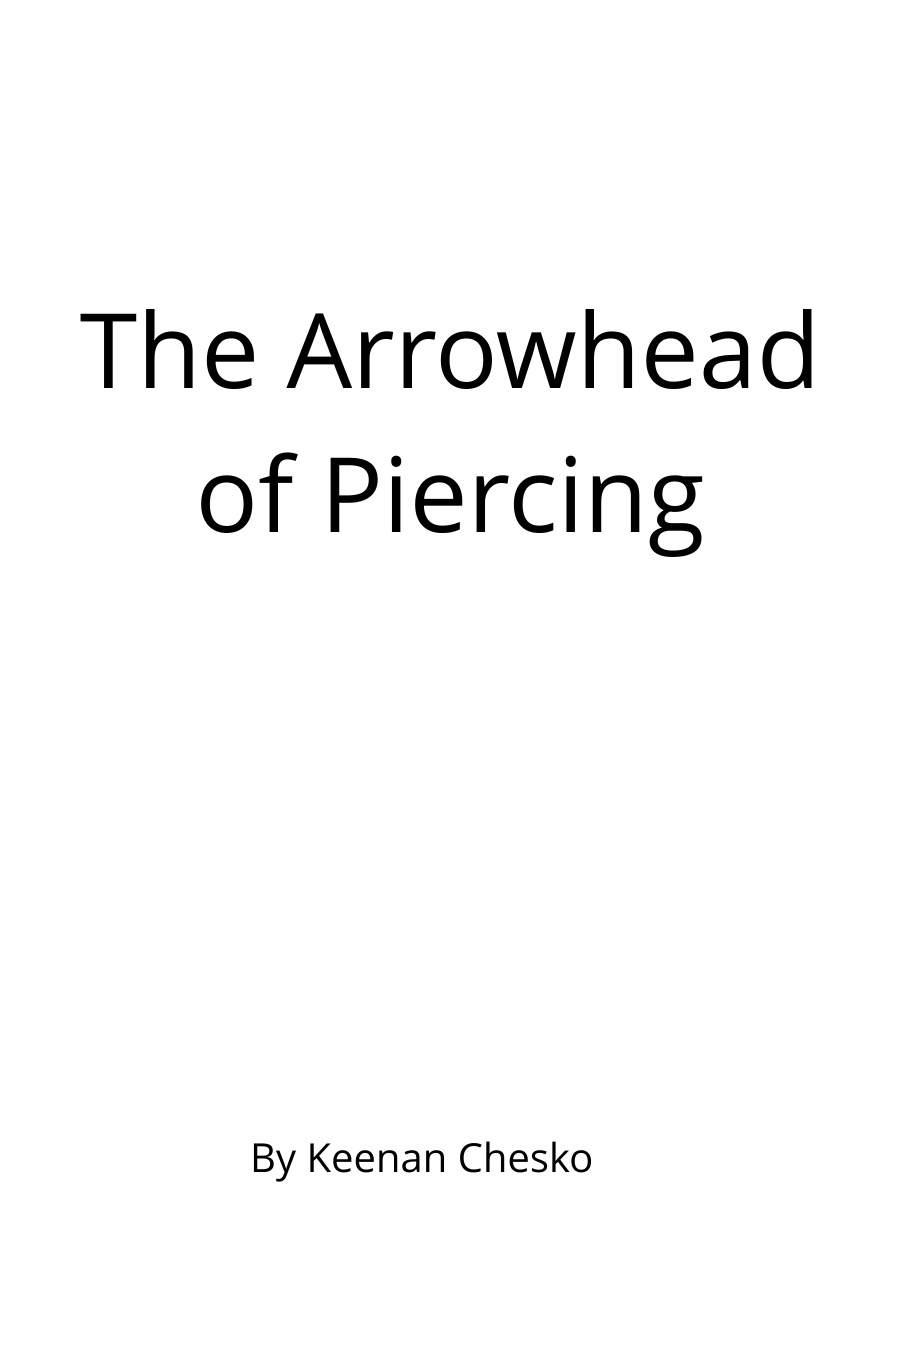 The Arrowhead Of Piercing